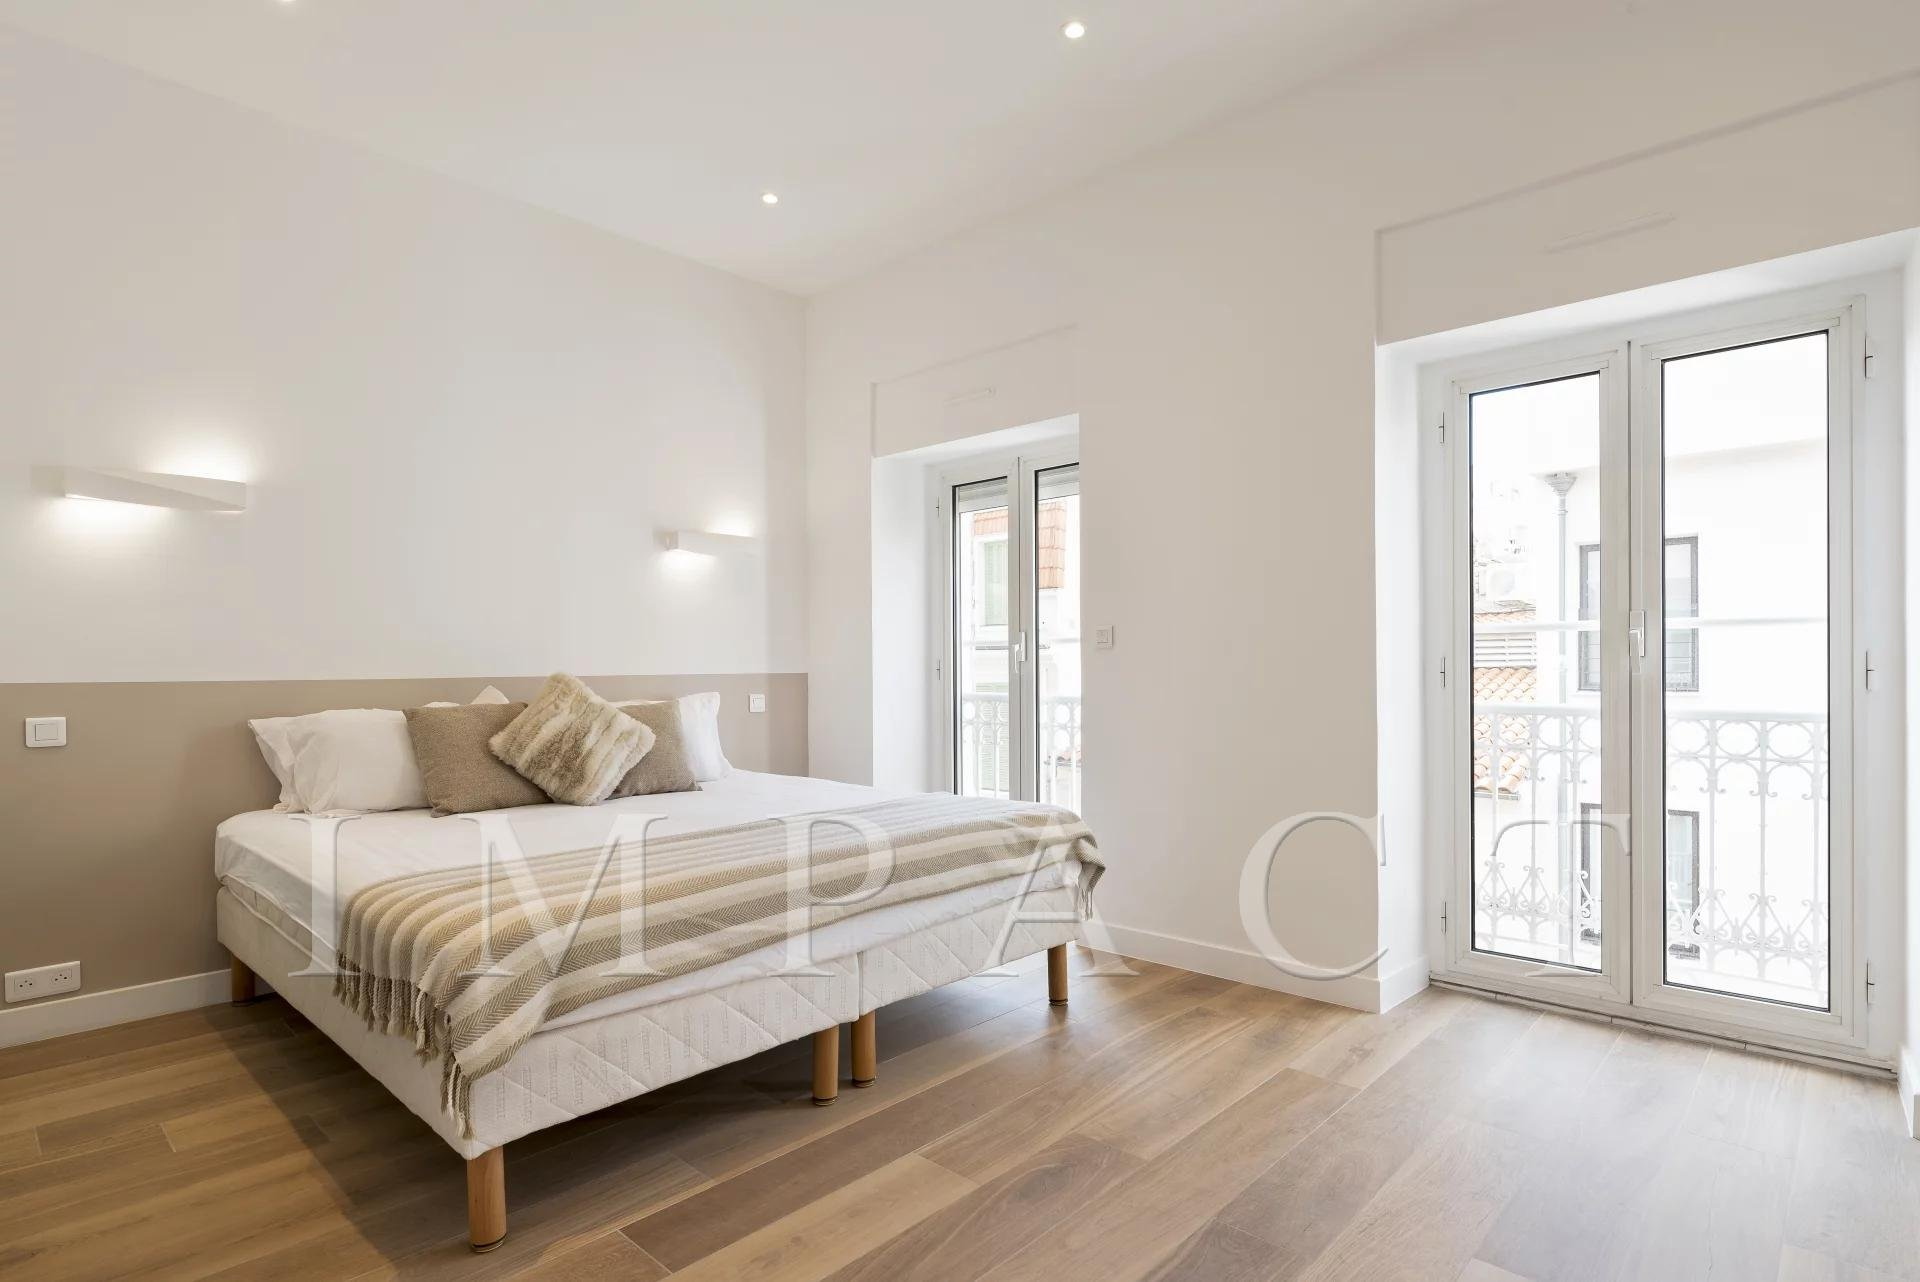 Location Appartement 3 chambres centre Cannes